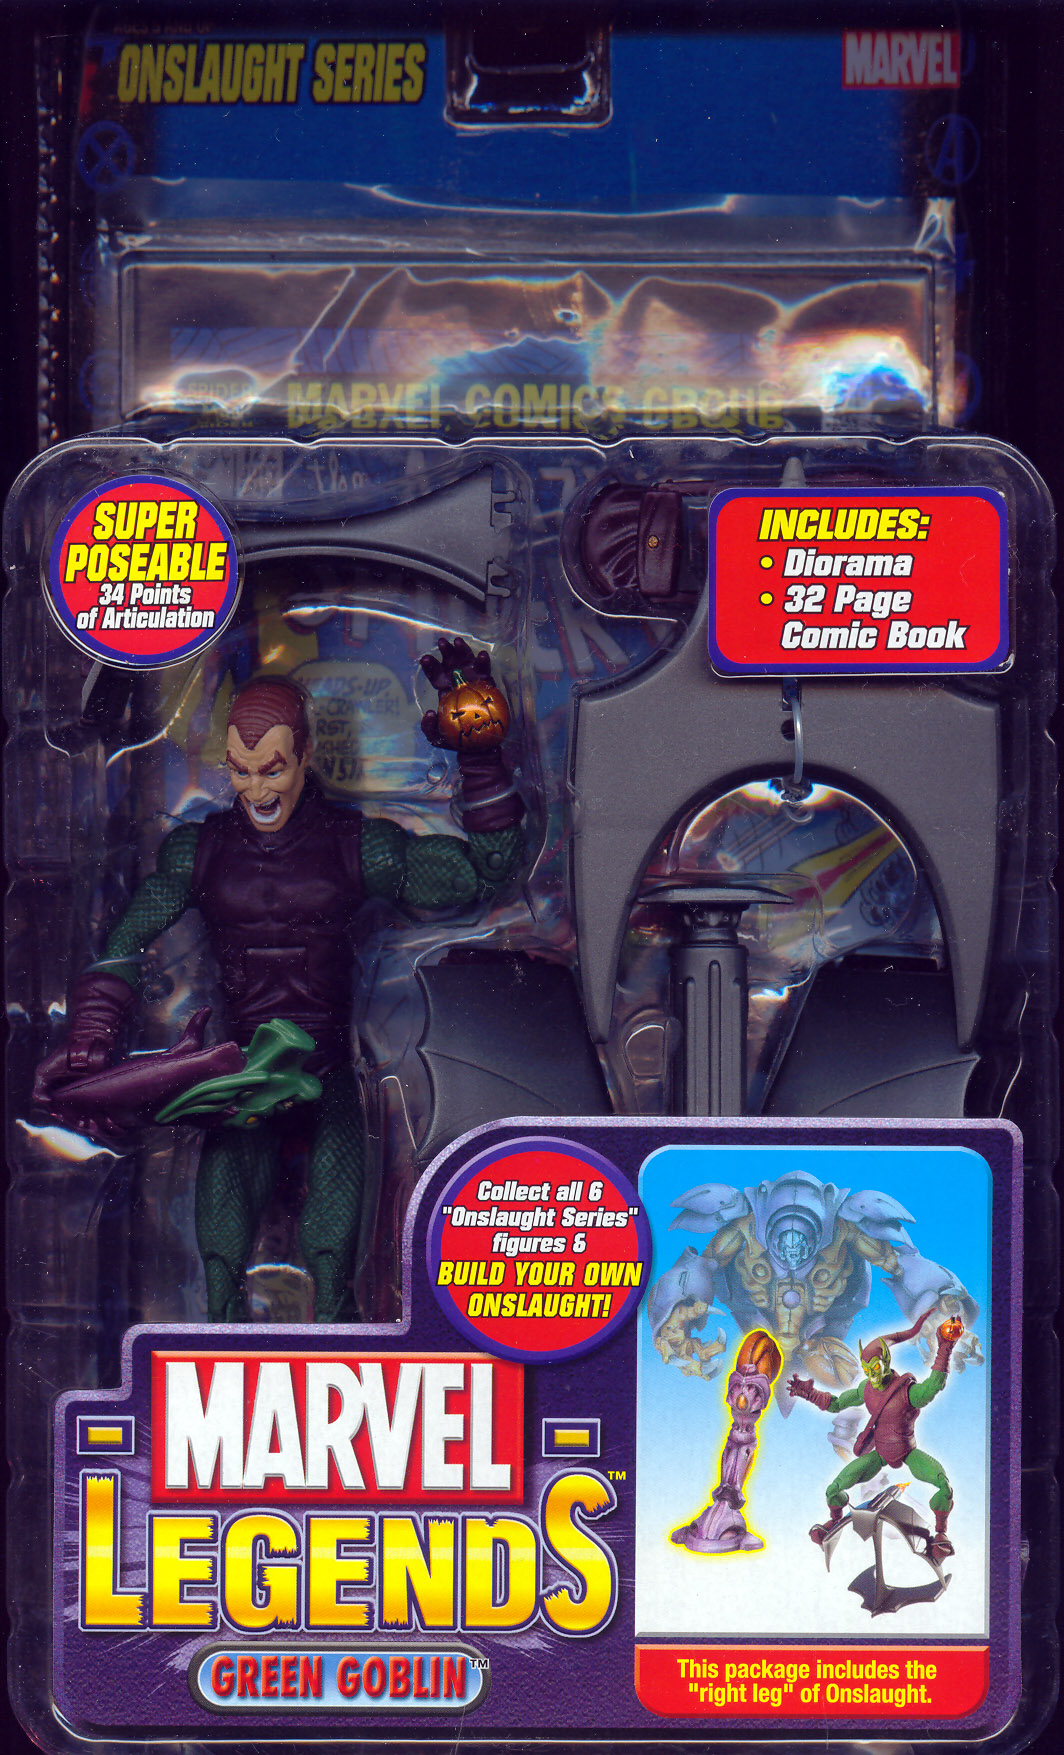 Green Goblin (Marvel Legends variant)